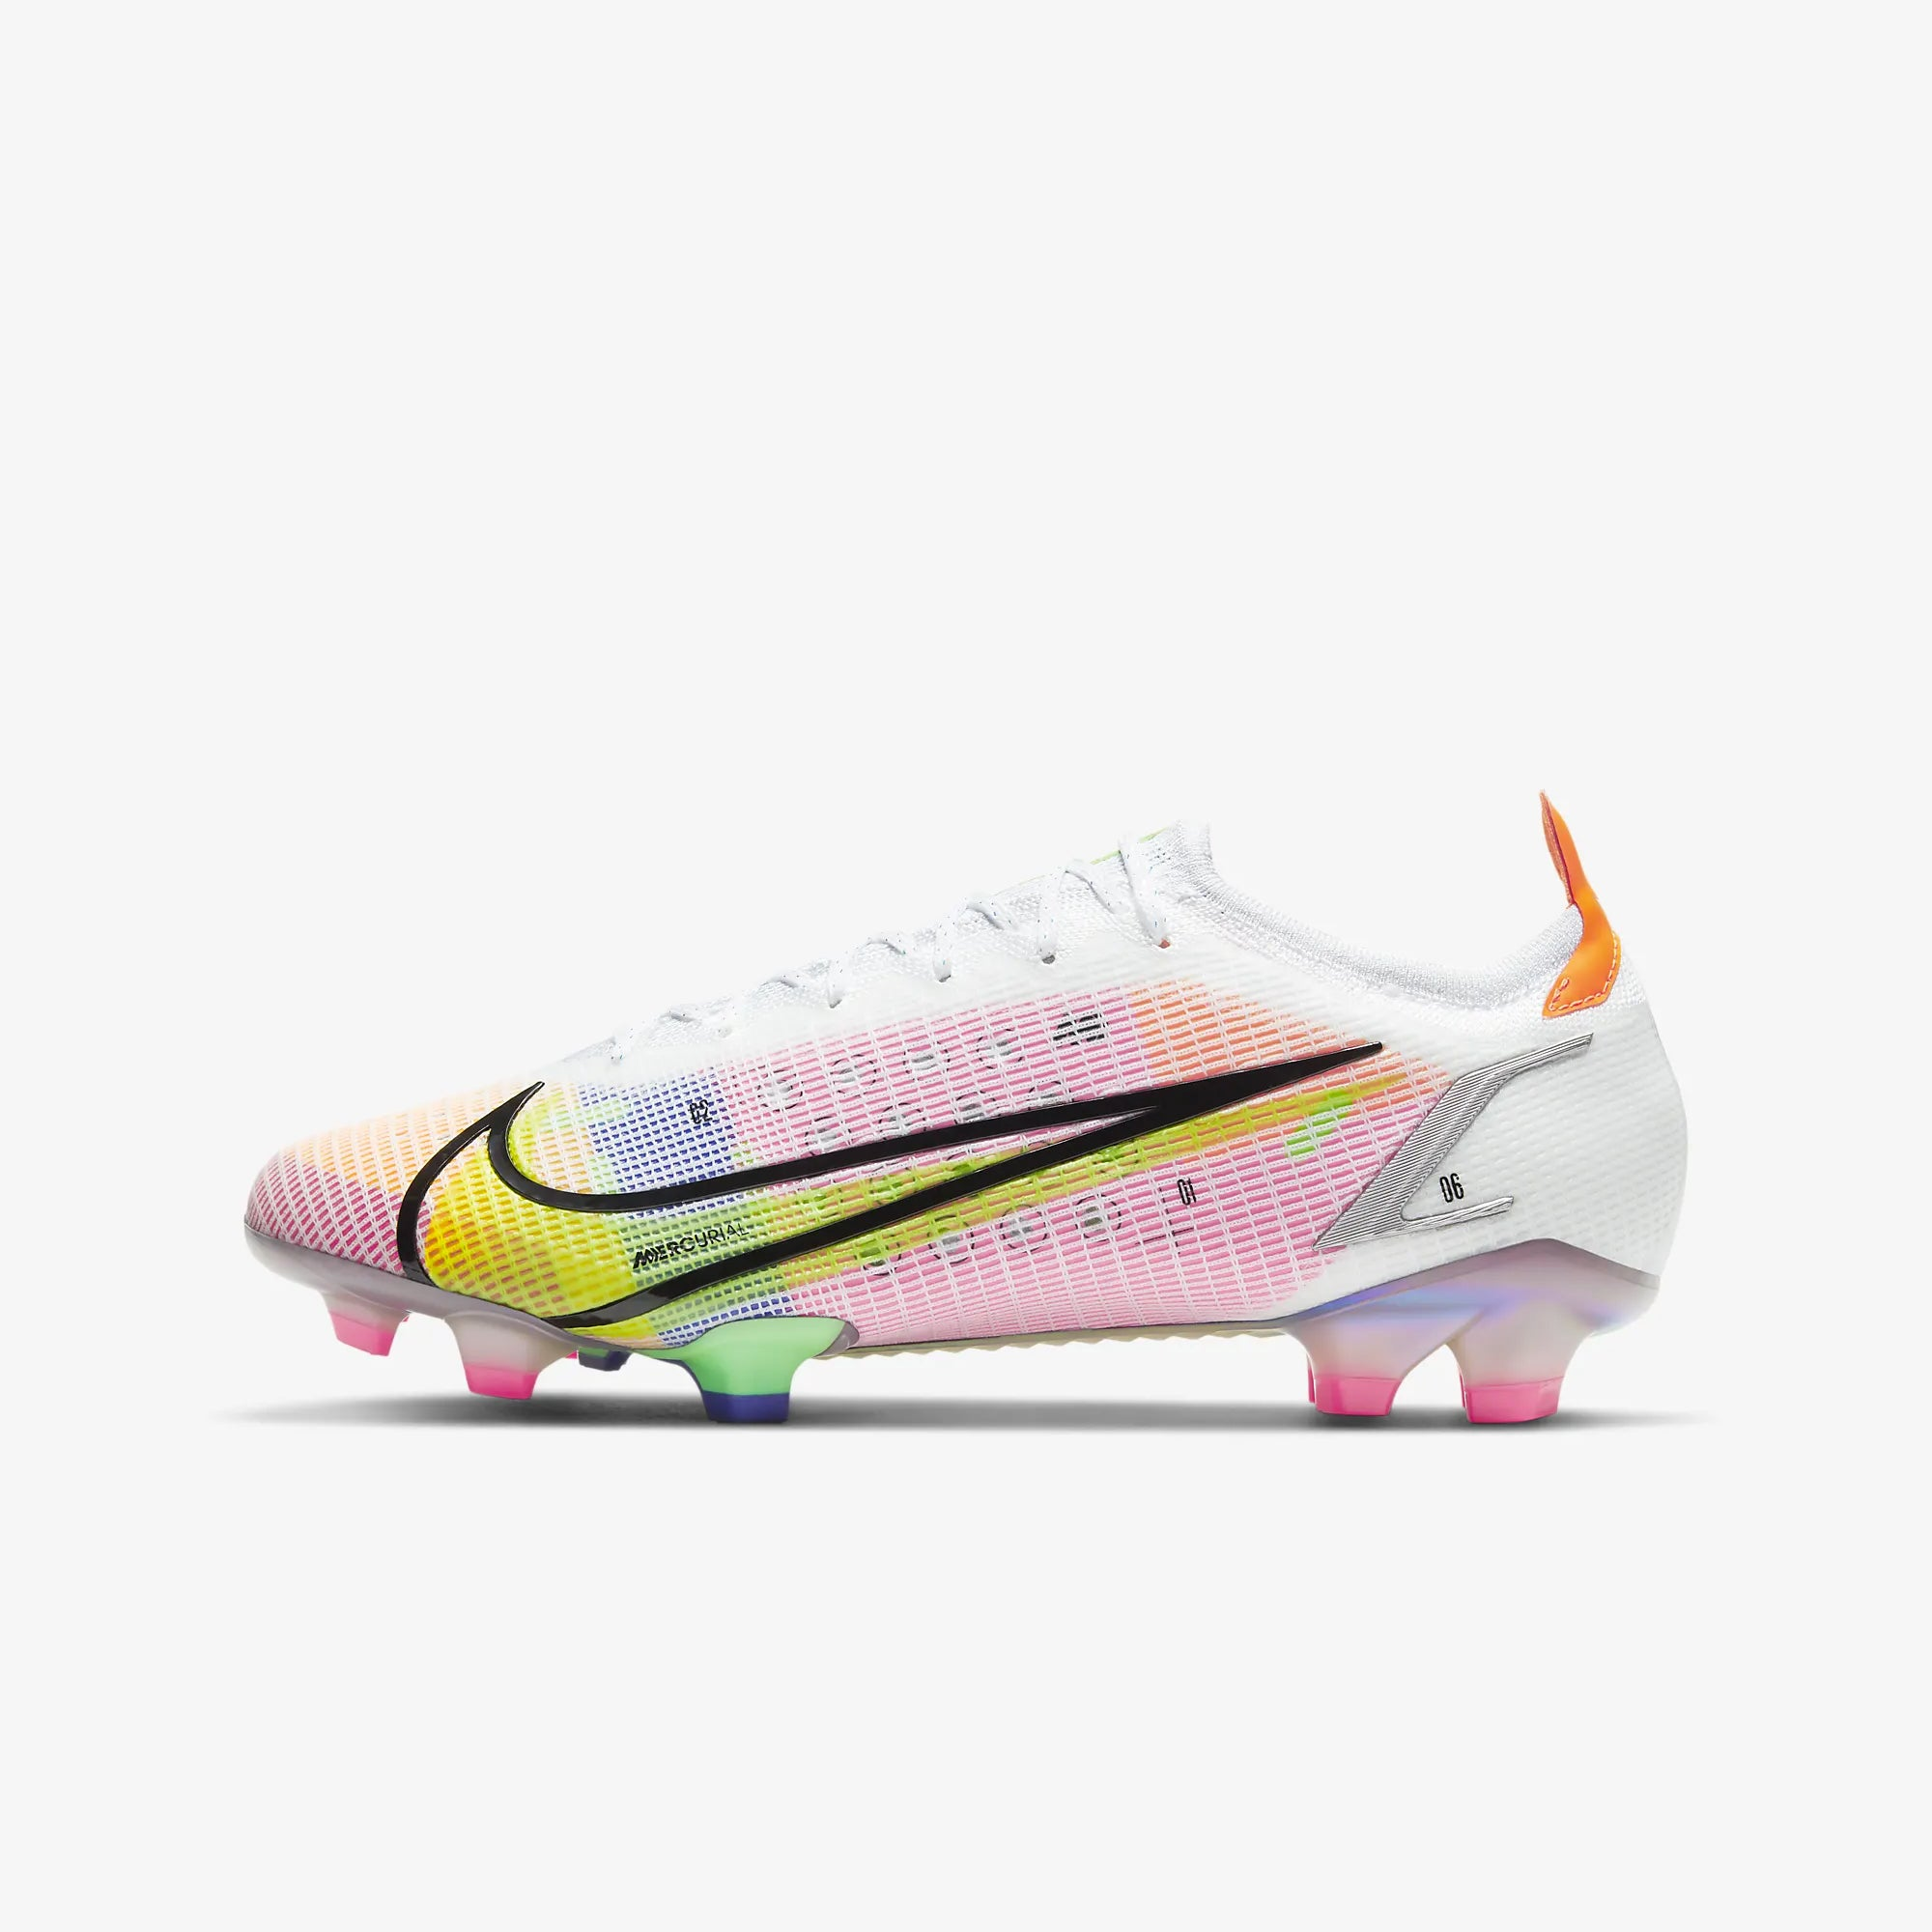 Mercurial Vapor Elite Dragonfly Firm Ground Soccer Shoes